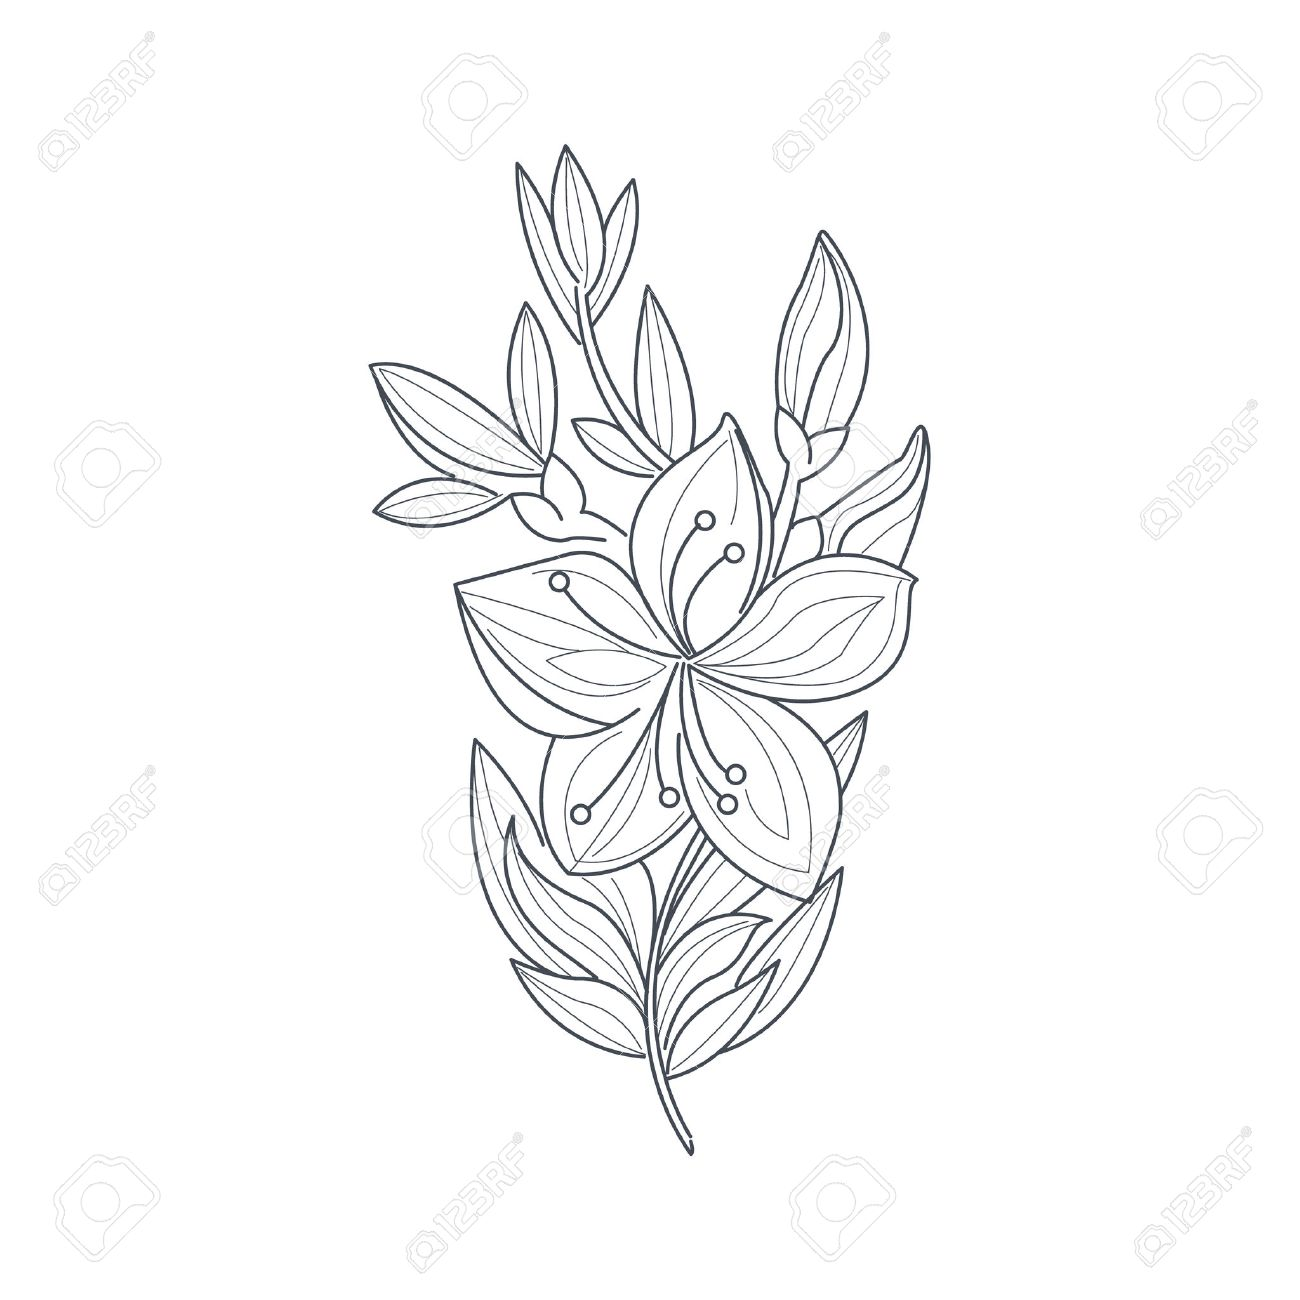 Jasmine Flower Monochrome Drawing For Coloring Book Hand Drawn ...